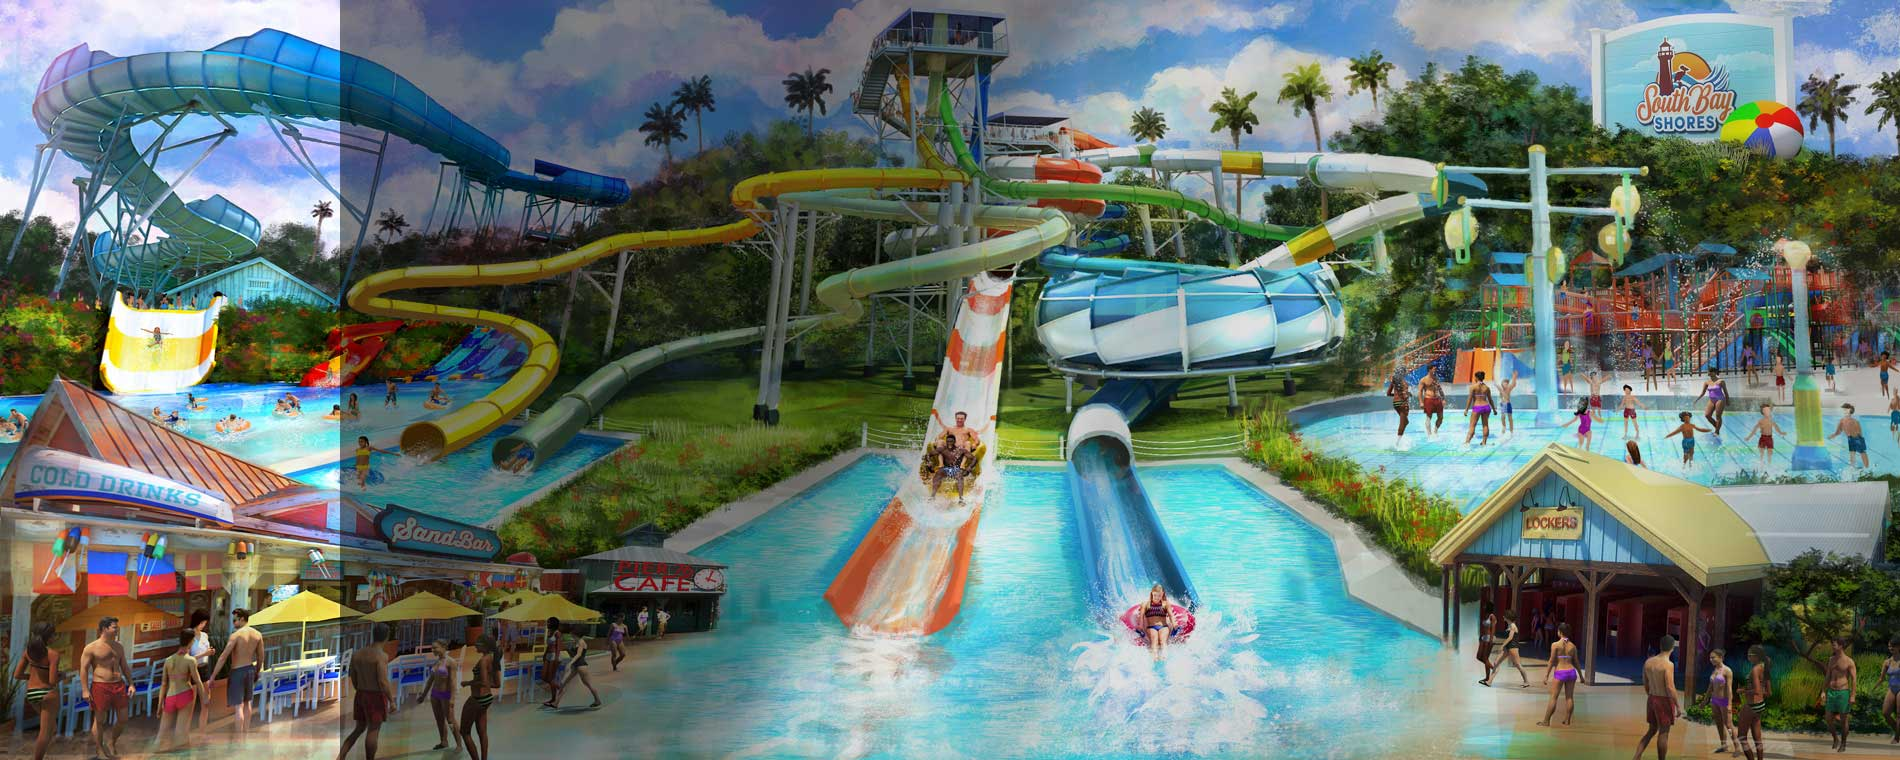 South Bay Shores Waterpark